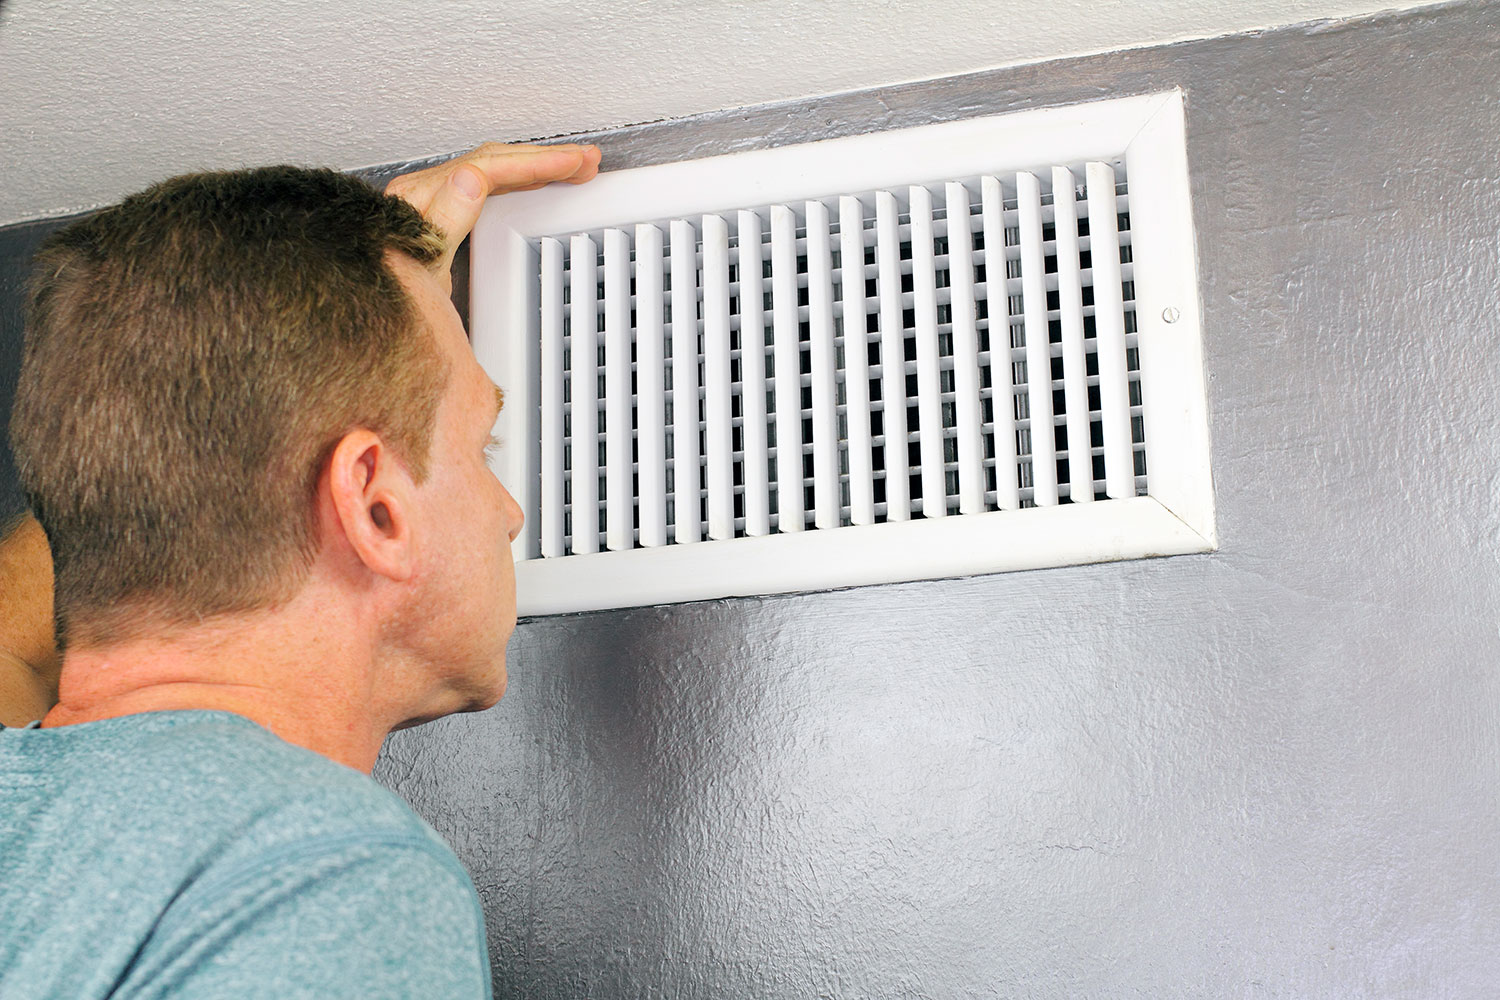 Should I get my AC ducts cleaned?